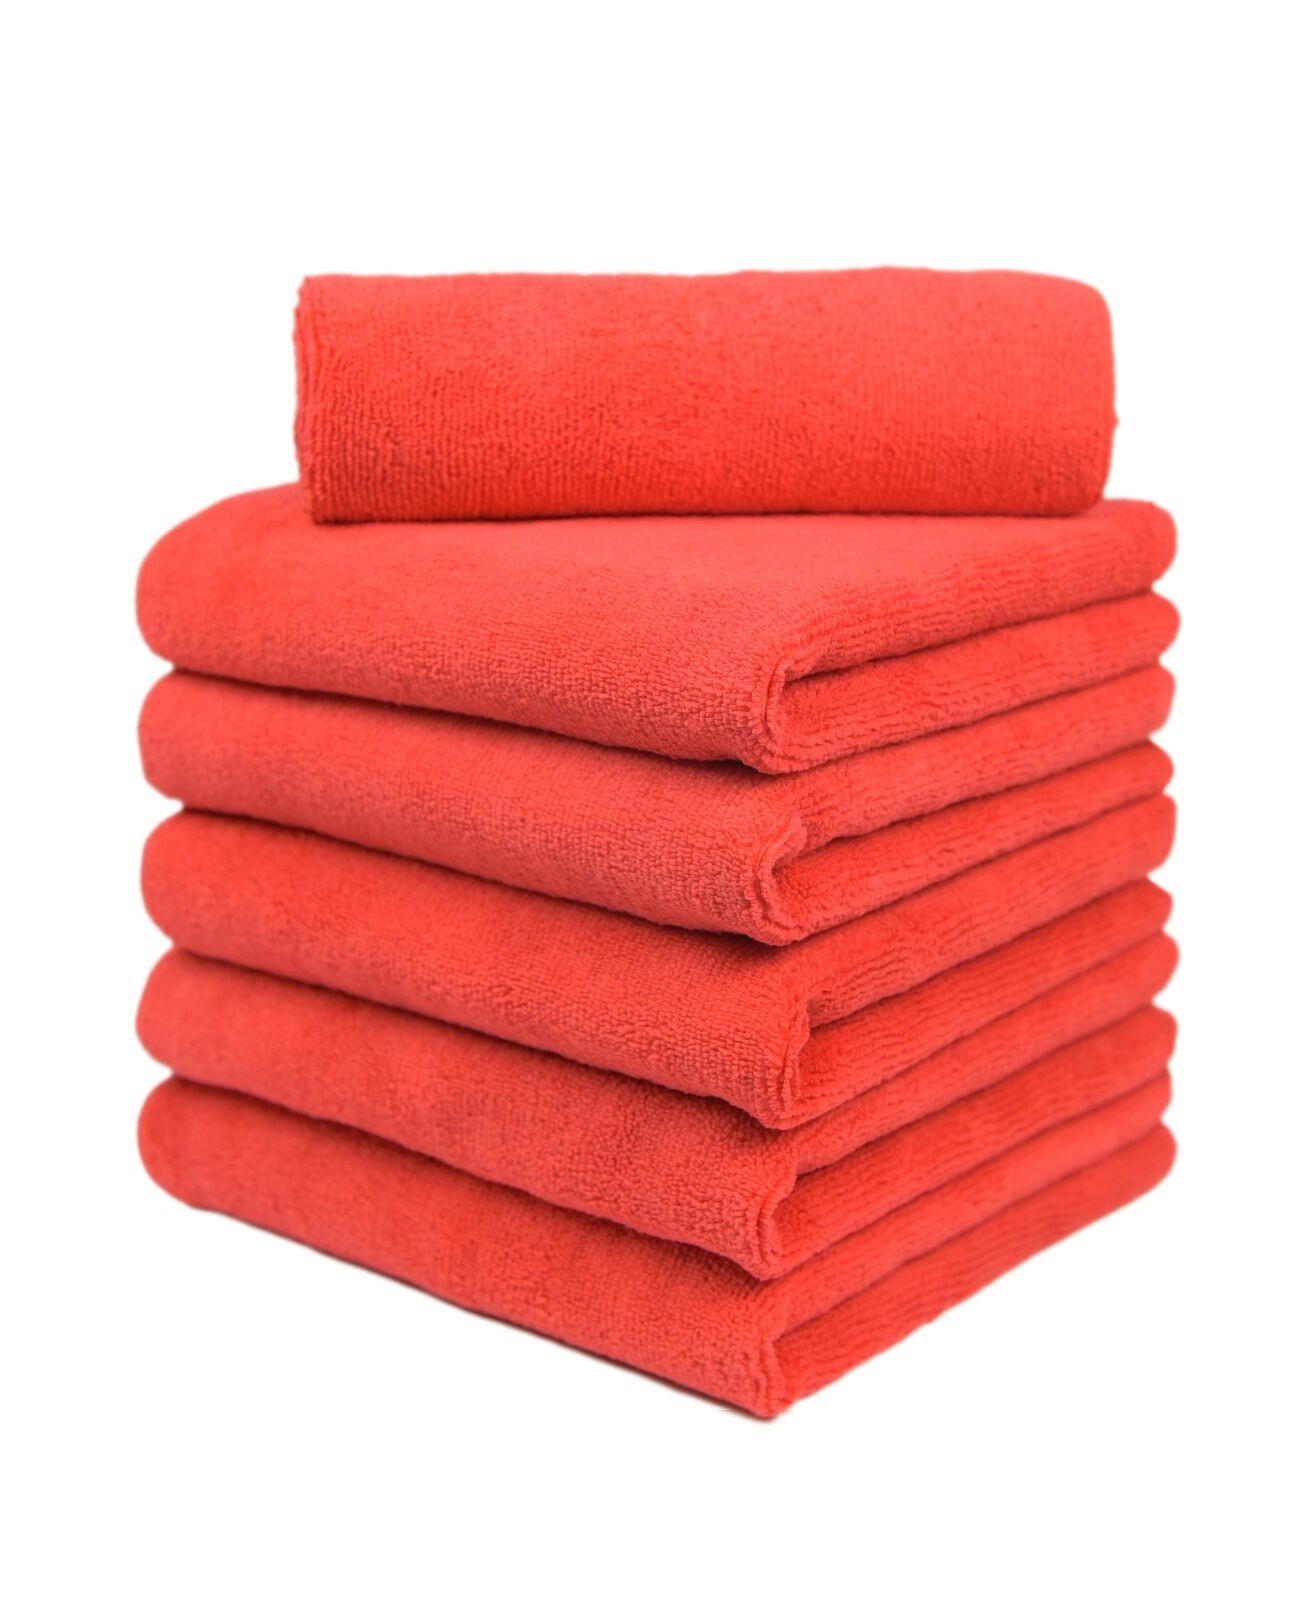 6 pcs microfiber towel auto household clean polish wash cloths 16 x16 red new for sale in. Black Bedroom Furniture Sets. Home Design Ideas